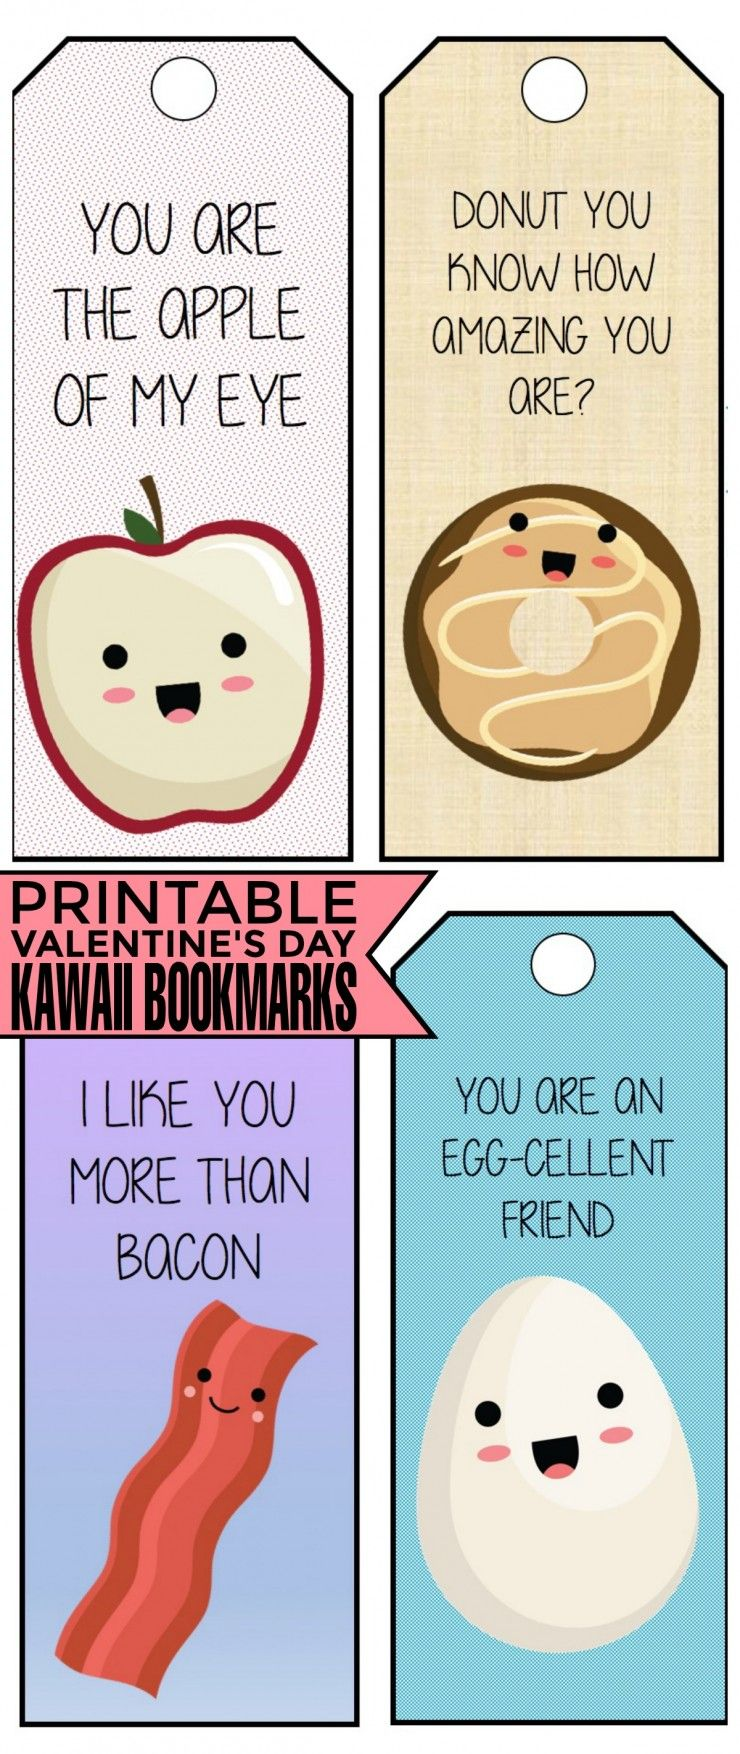 These Free Printable Valentines Day Kawaii Bookmarks Are Super Cute I Love Kawaii Food Illustrations They Are Adorable They Are Perfect For Classroom